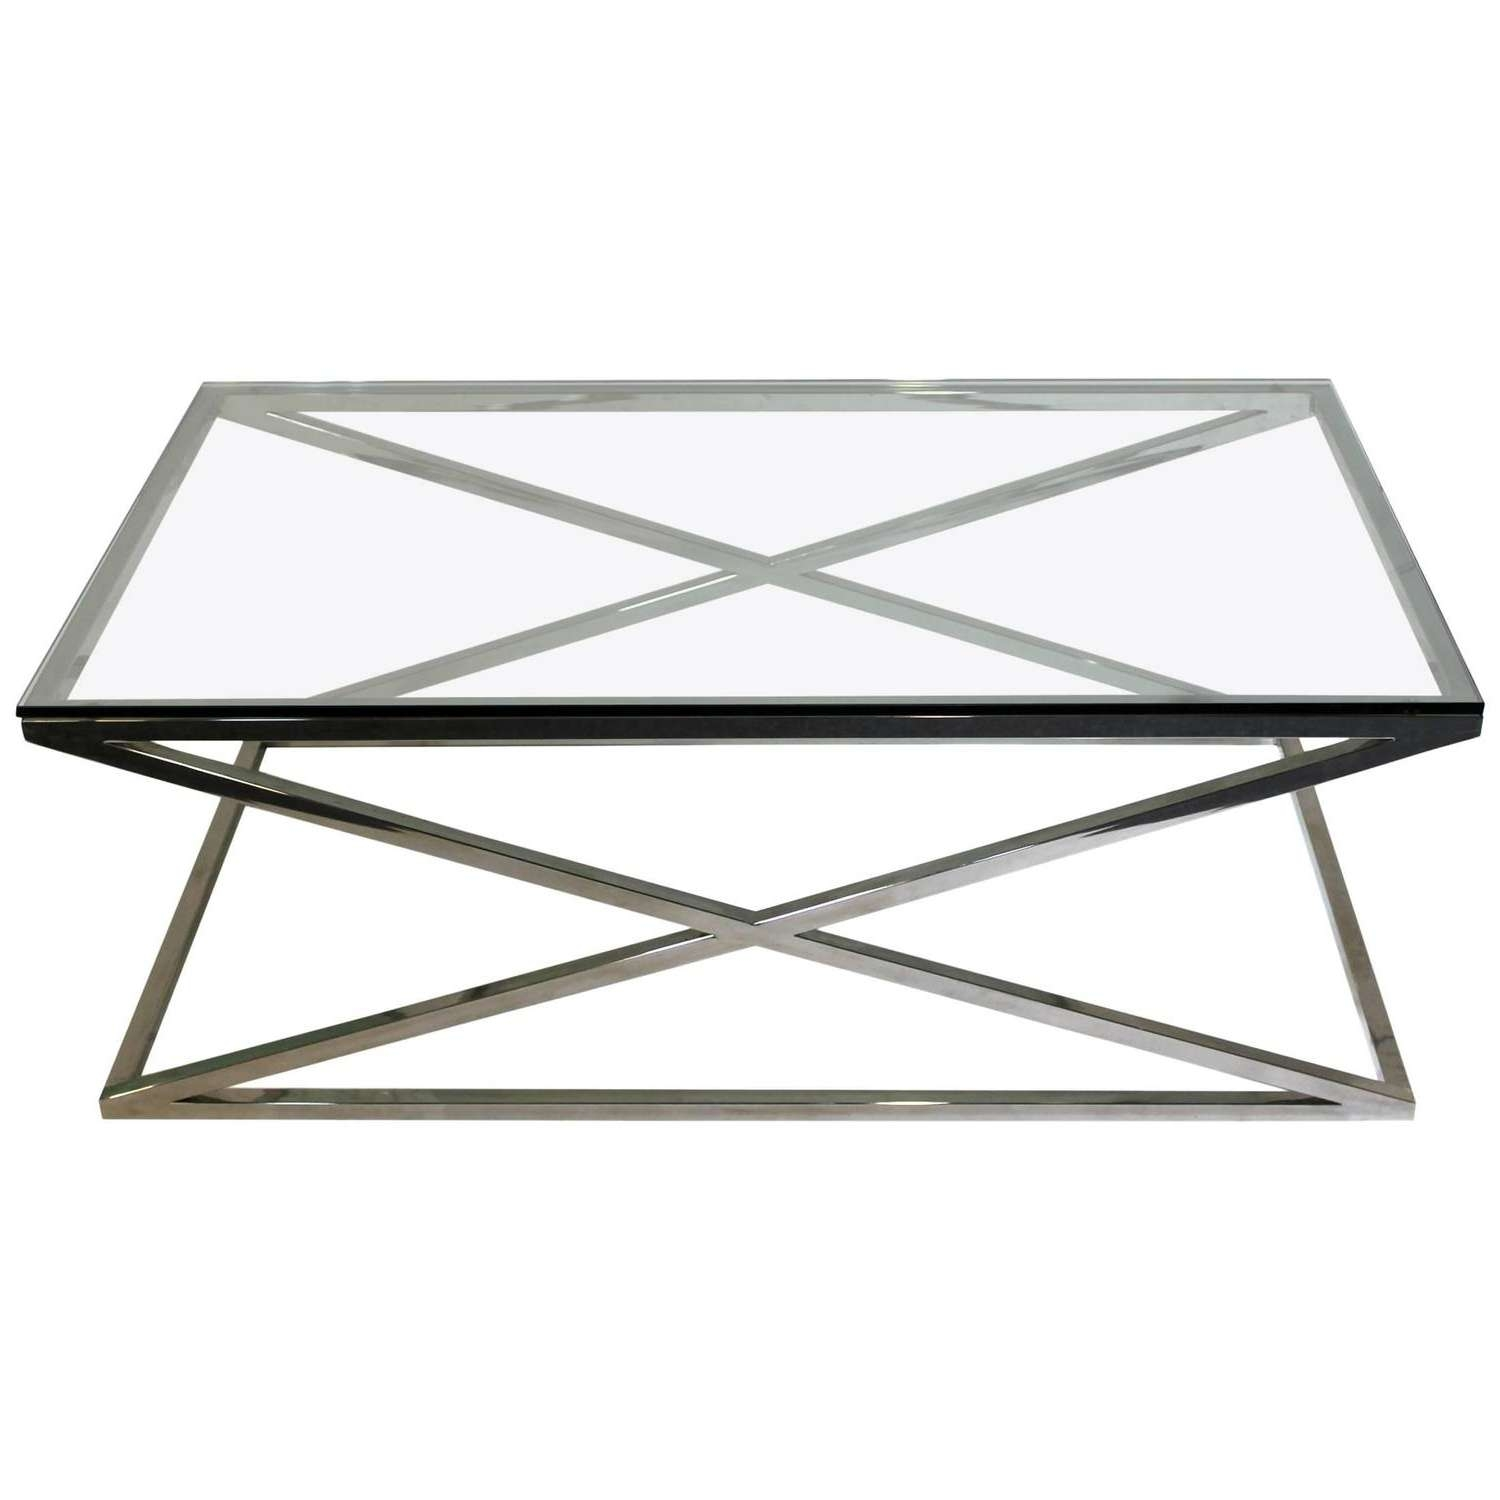 2017 Chrome Glass Coffee Tables In Mid Century Modern Rectangular Glass Coffee Table Chrome X Base At (View 1 of 20)